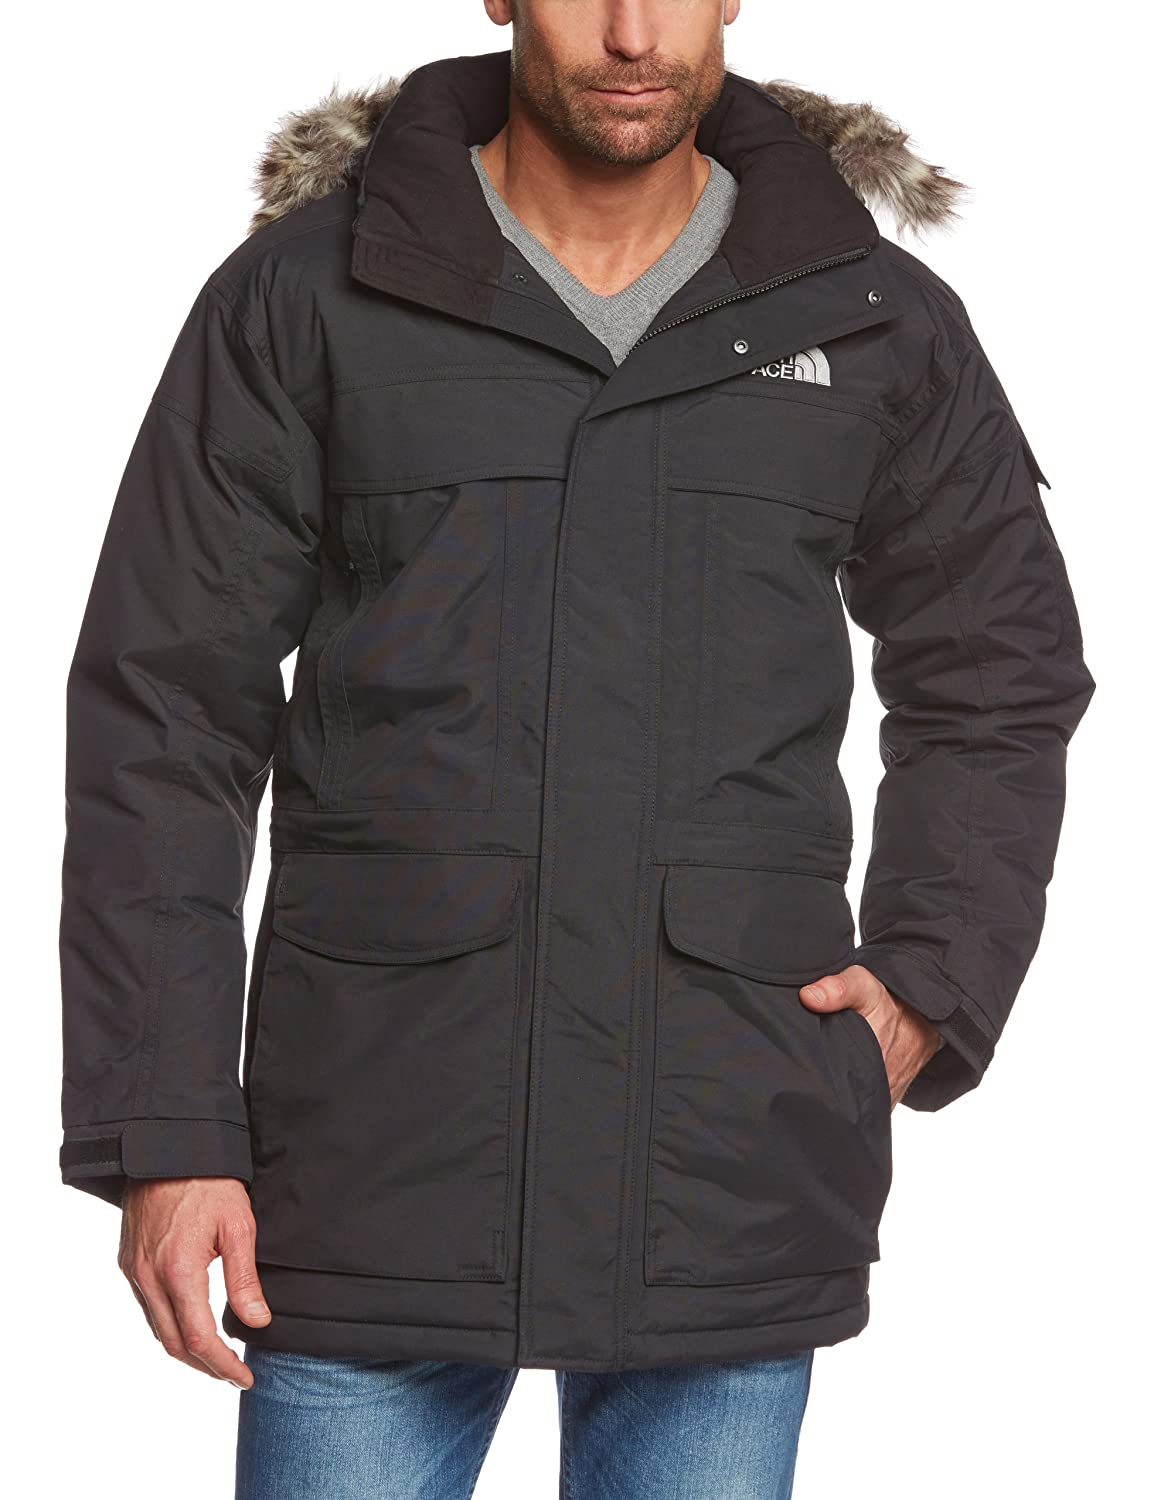 The North Face Men's McMurdo Jacket: Amazon.co.uk: Sports & Outdoors